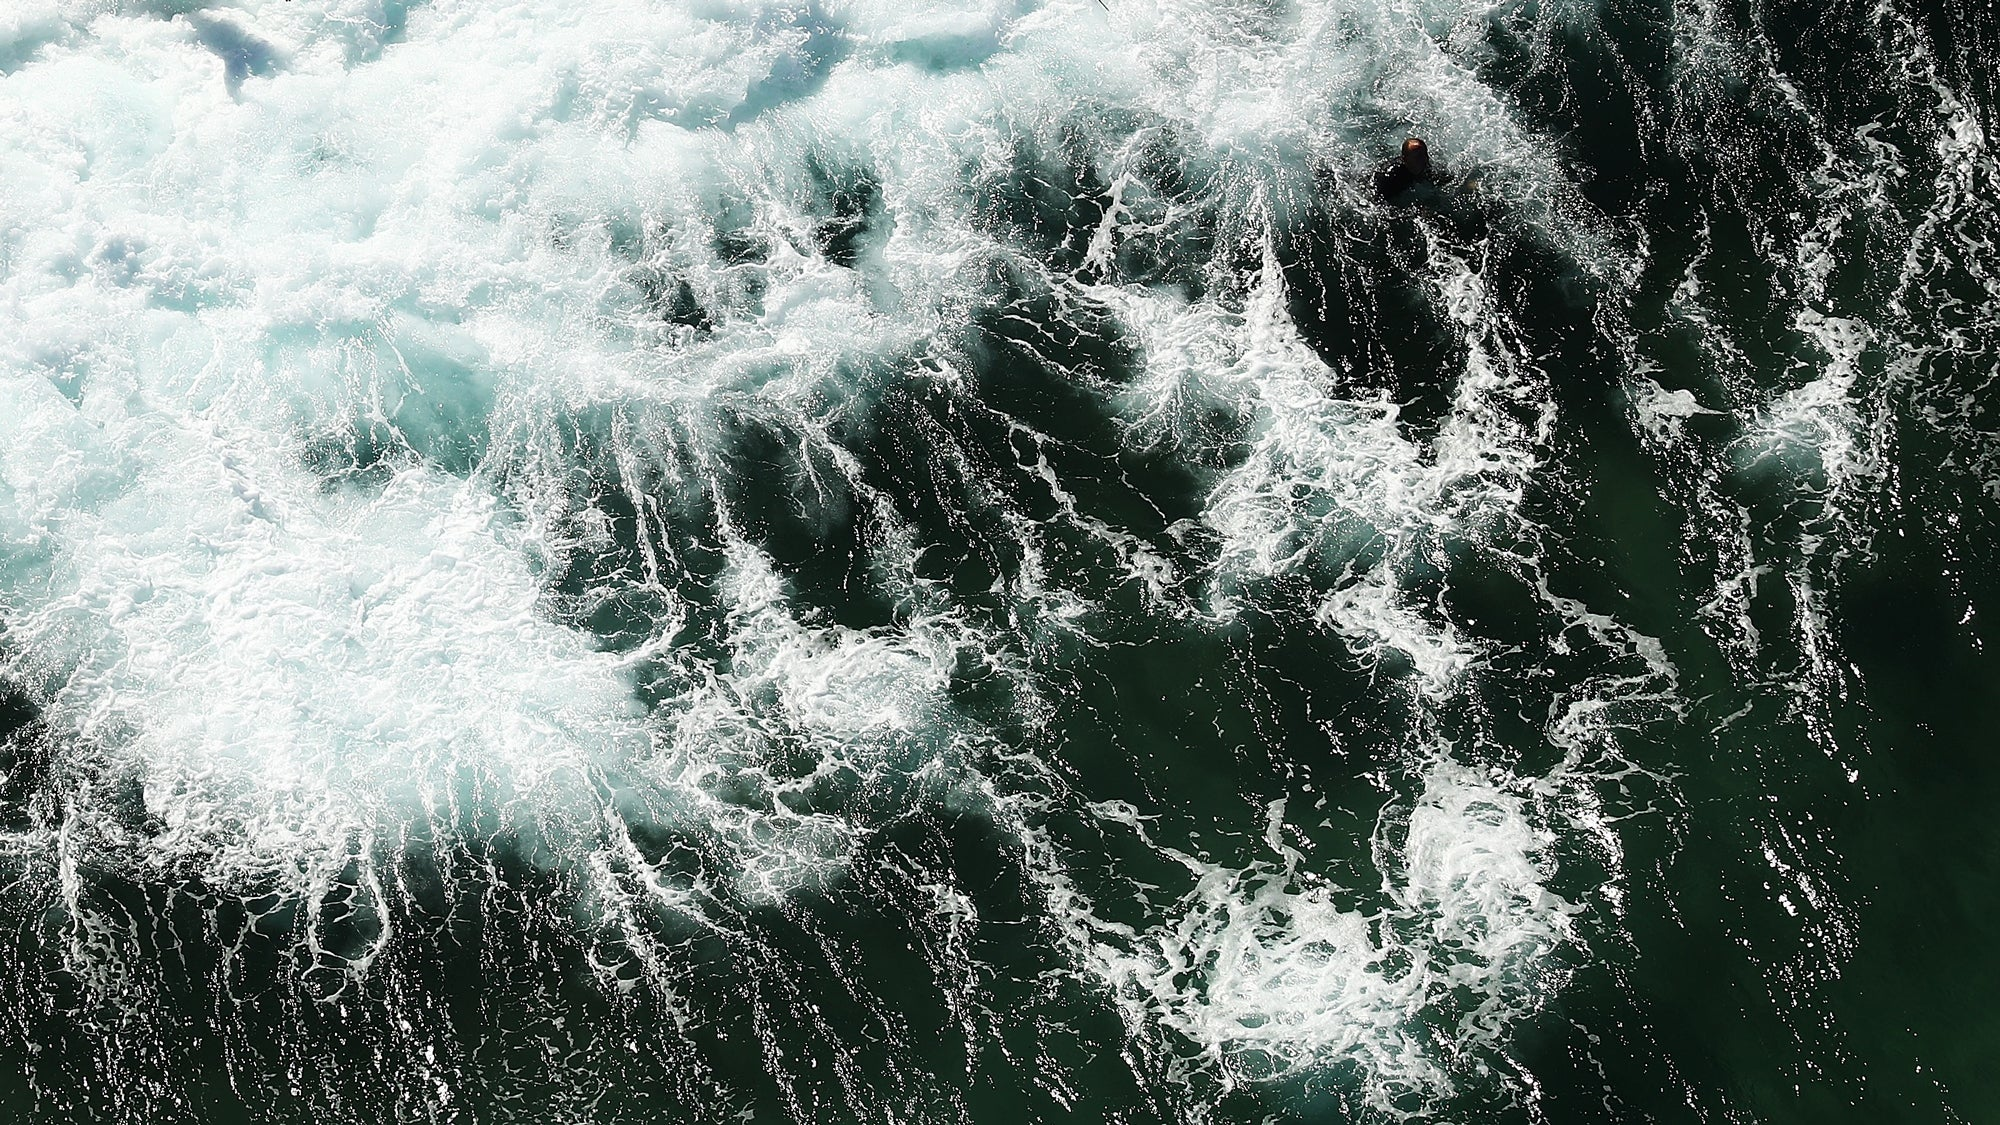 Human Carbon Emissions Are Dissolving The Ocean Floor